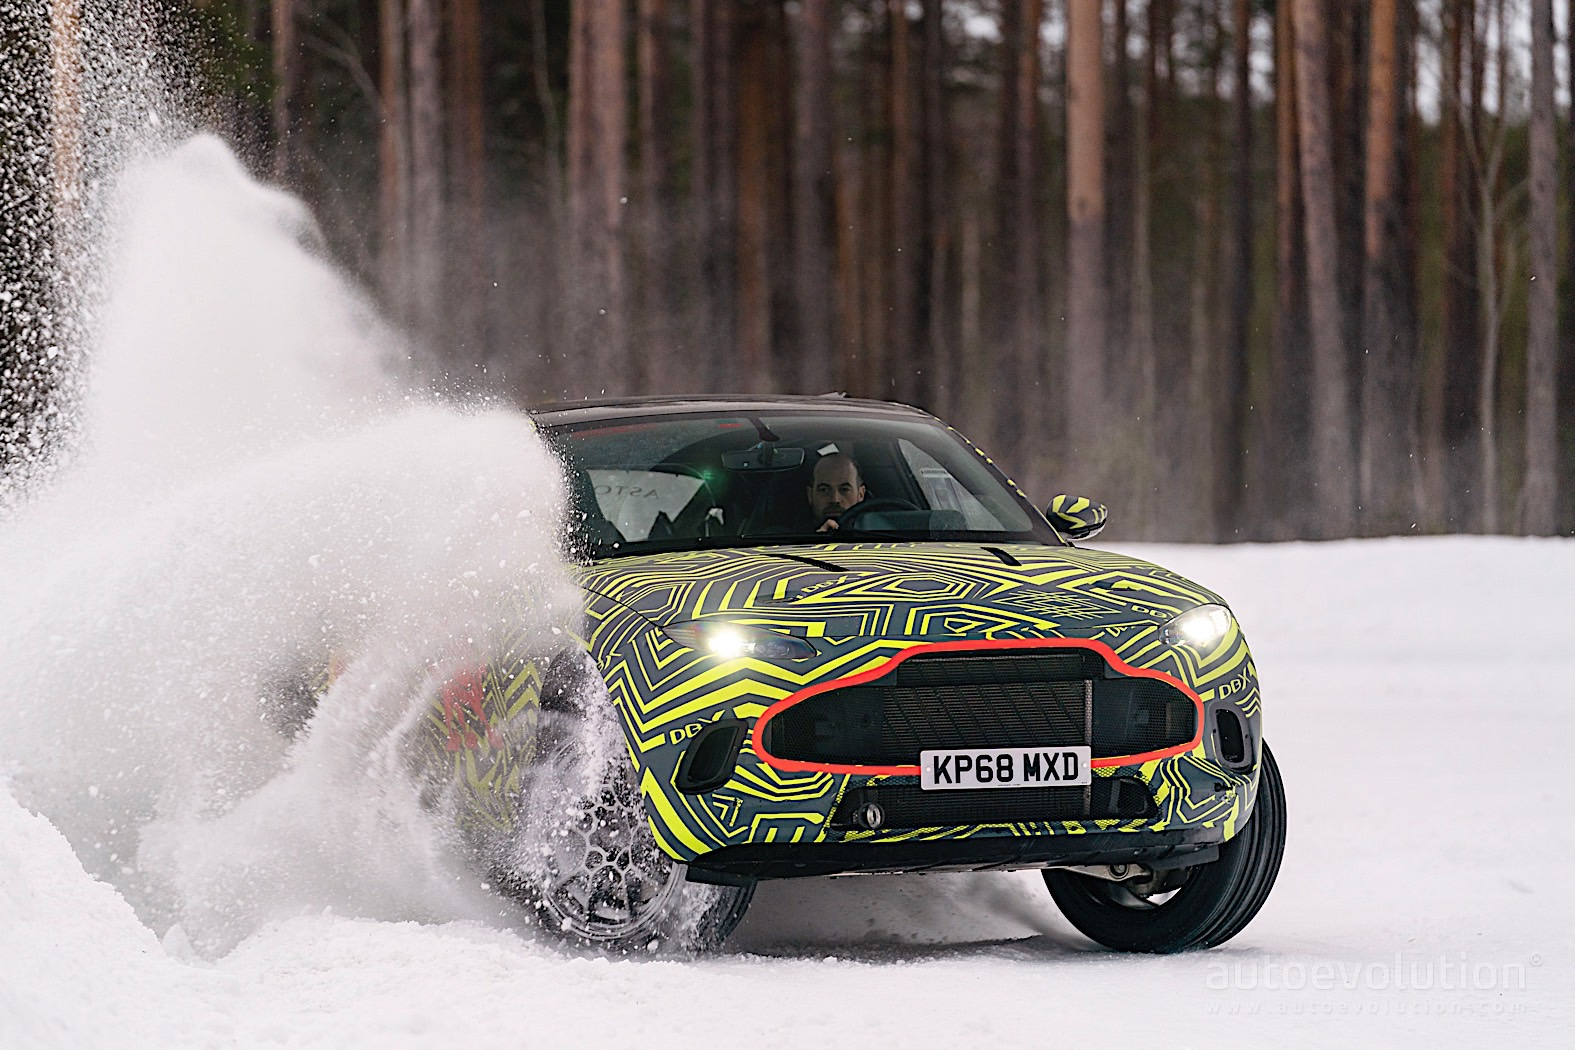 2020 Aston Martin DBX: Design, Powertrains, Arrival >> 2020 Aston Martin Dbx Shown Drifting On Snow In Official